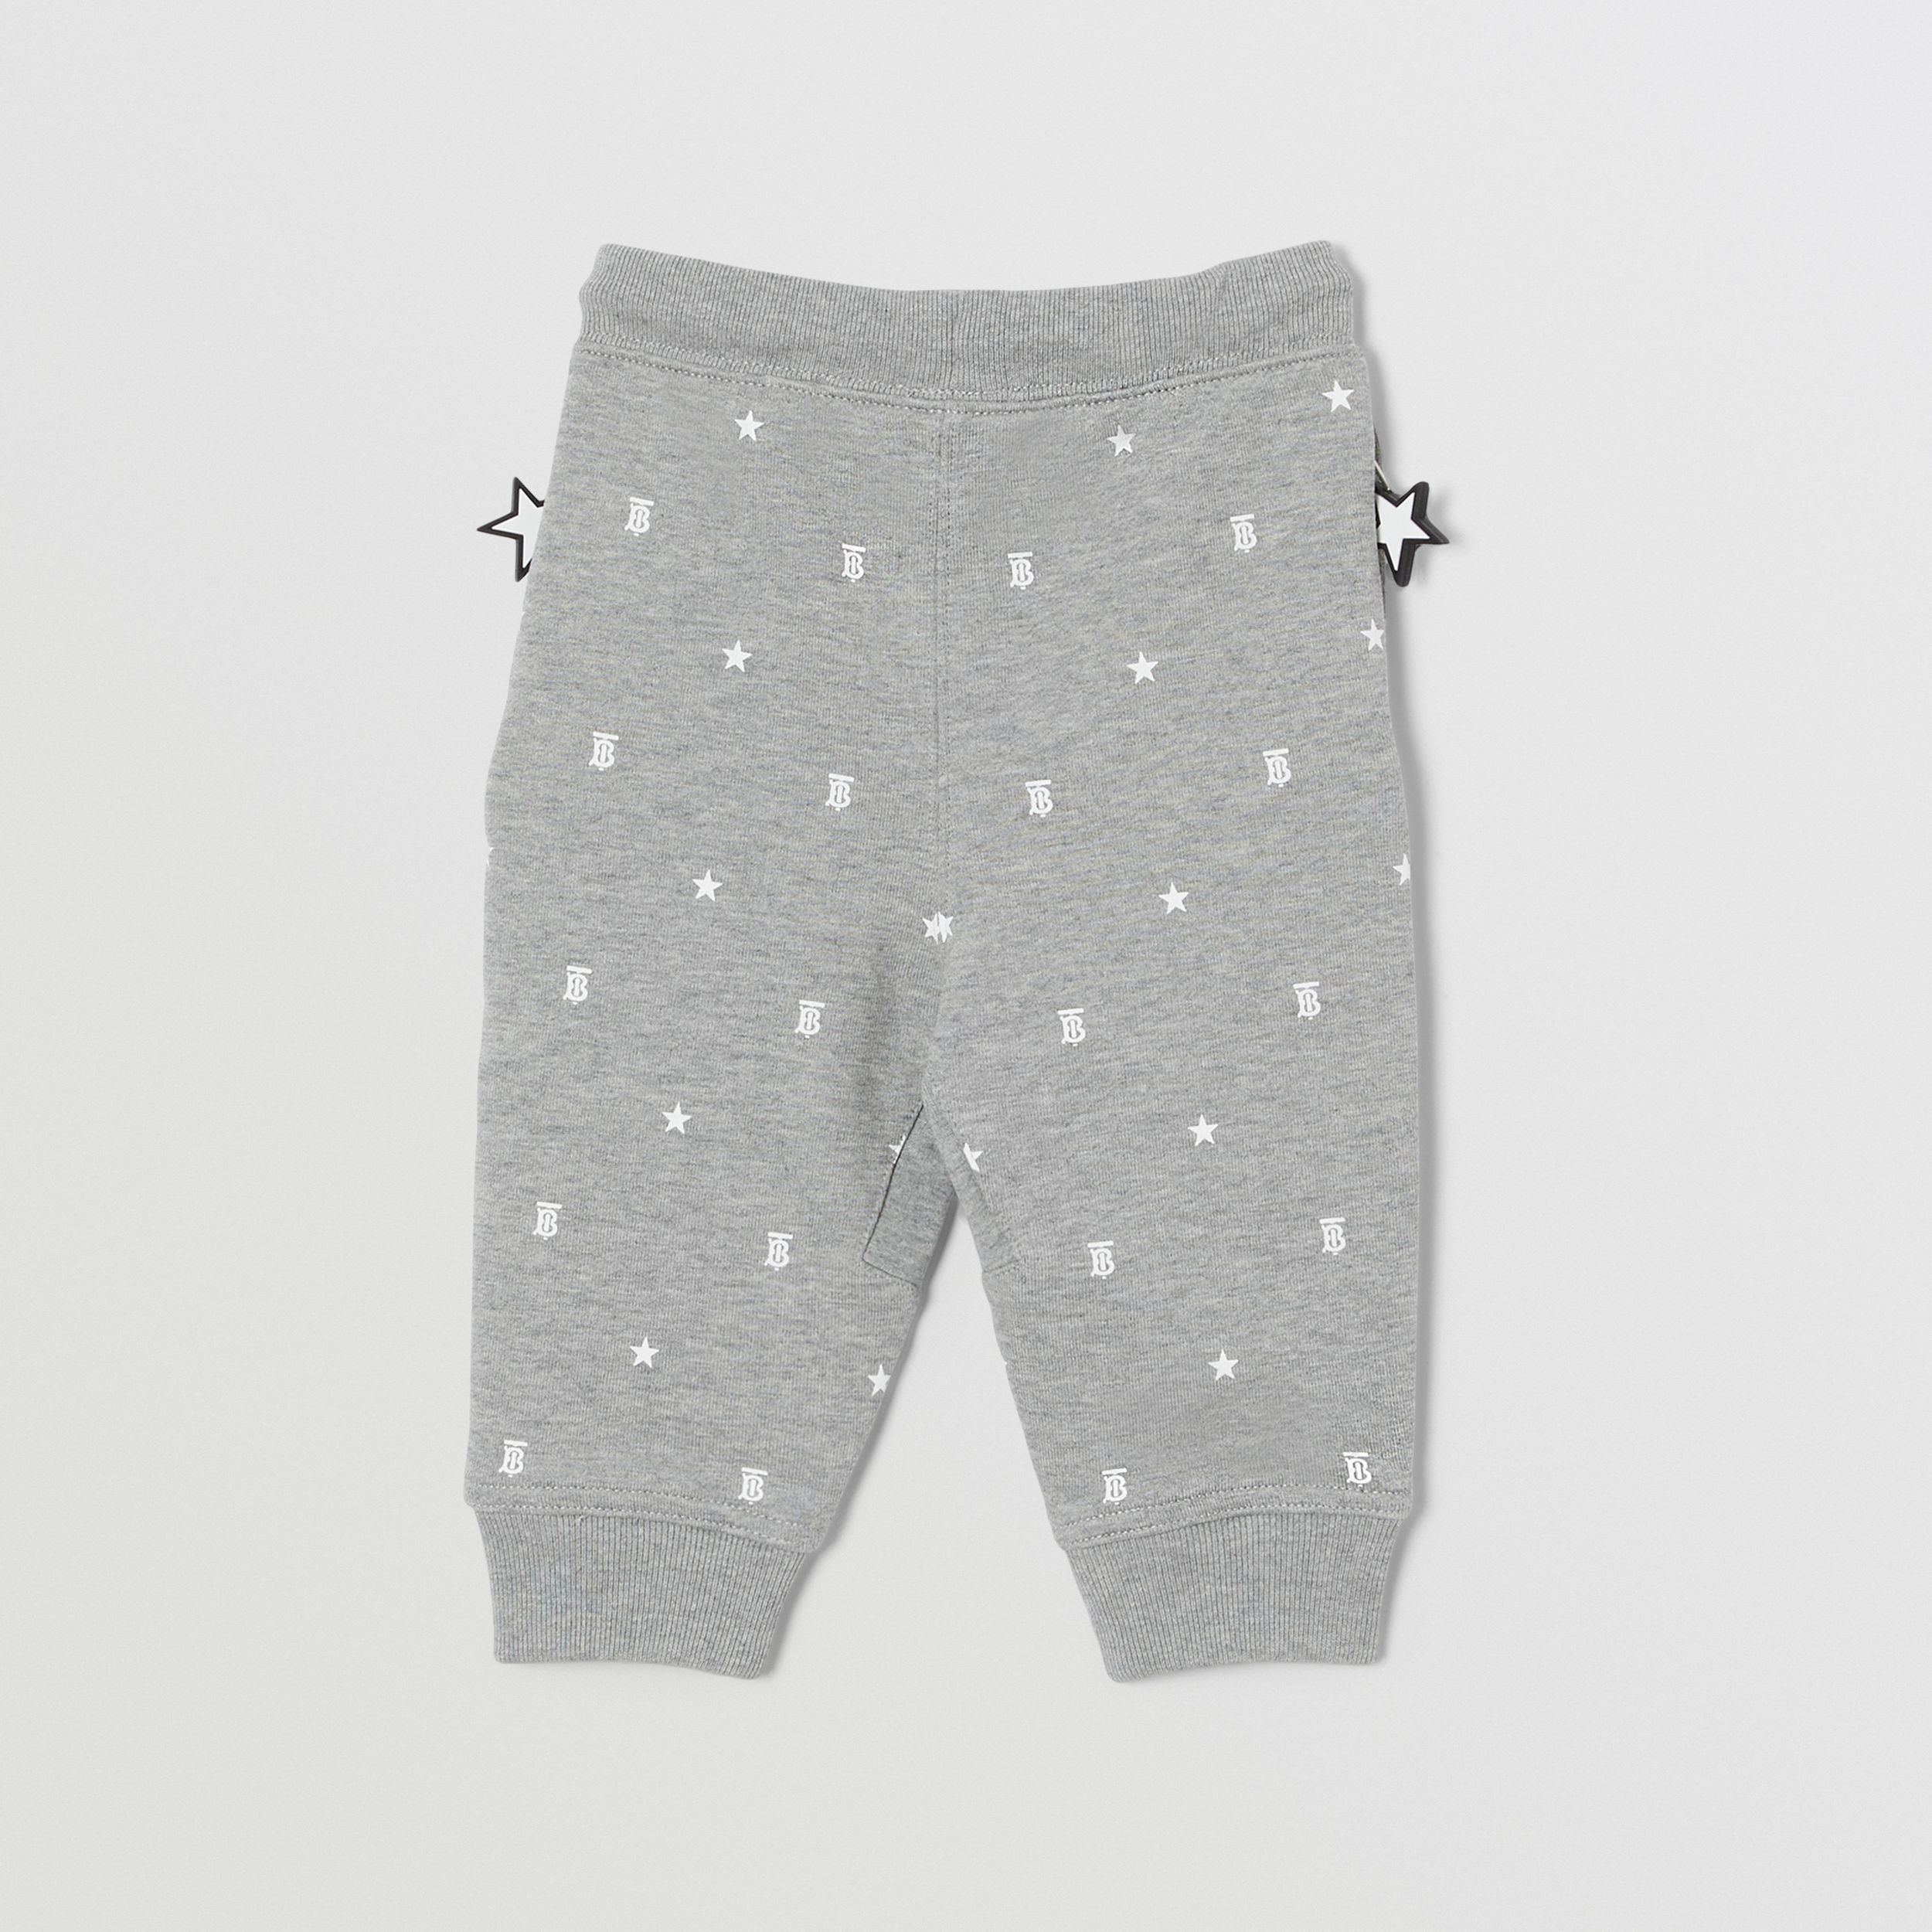 Star and Monogram Motif Cotton Jogging Pants in Grey - Children | Burberry - 4